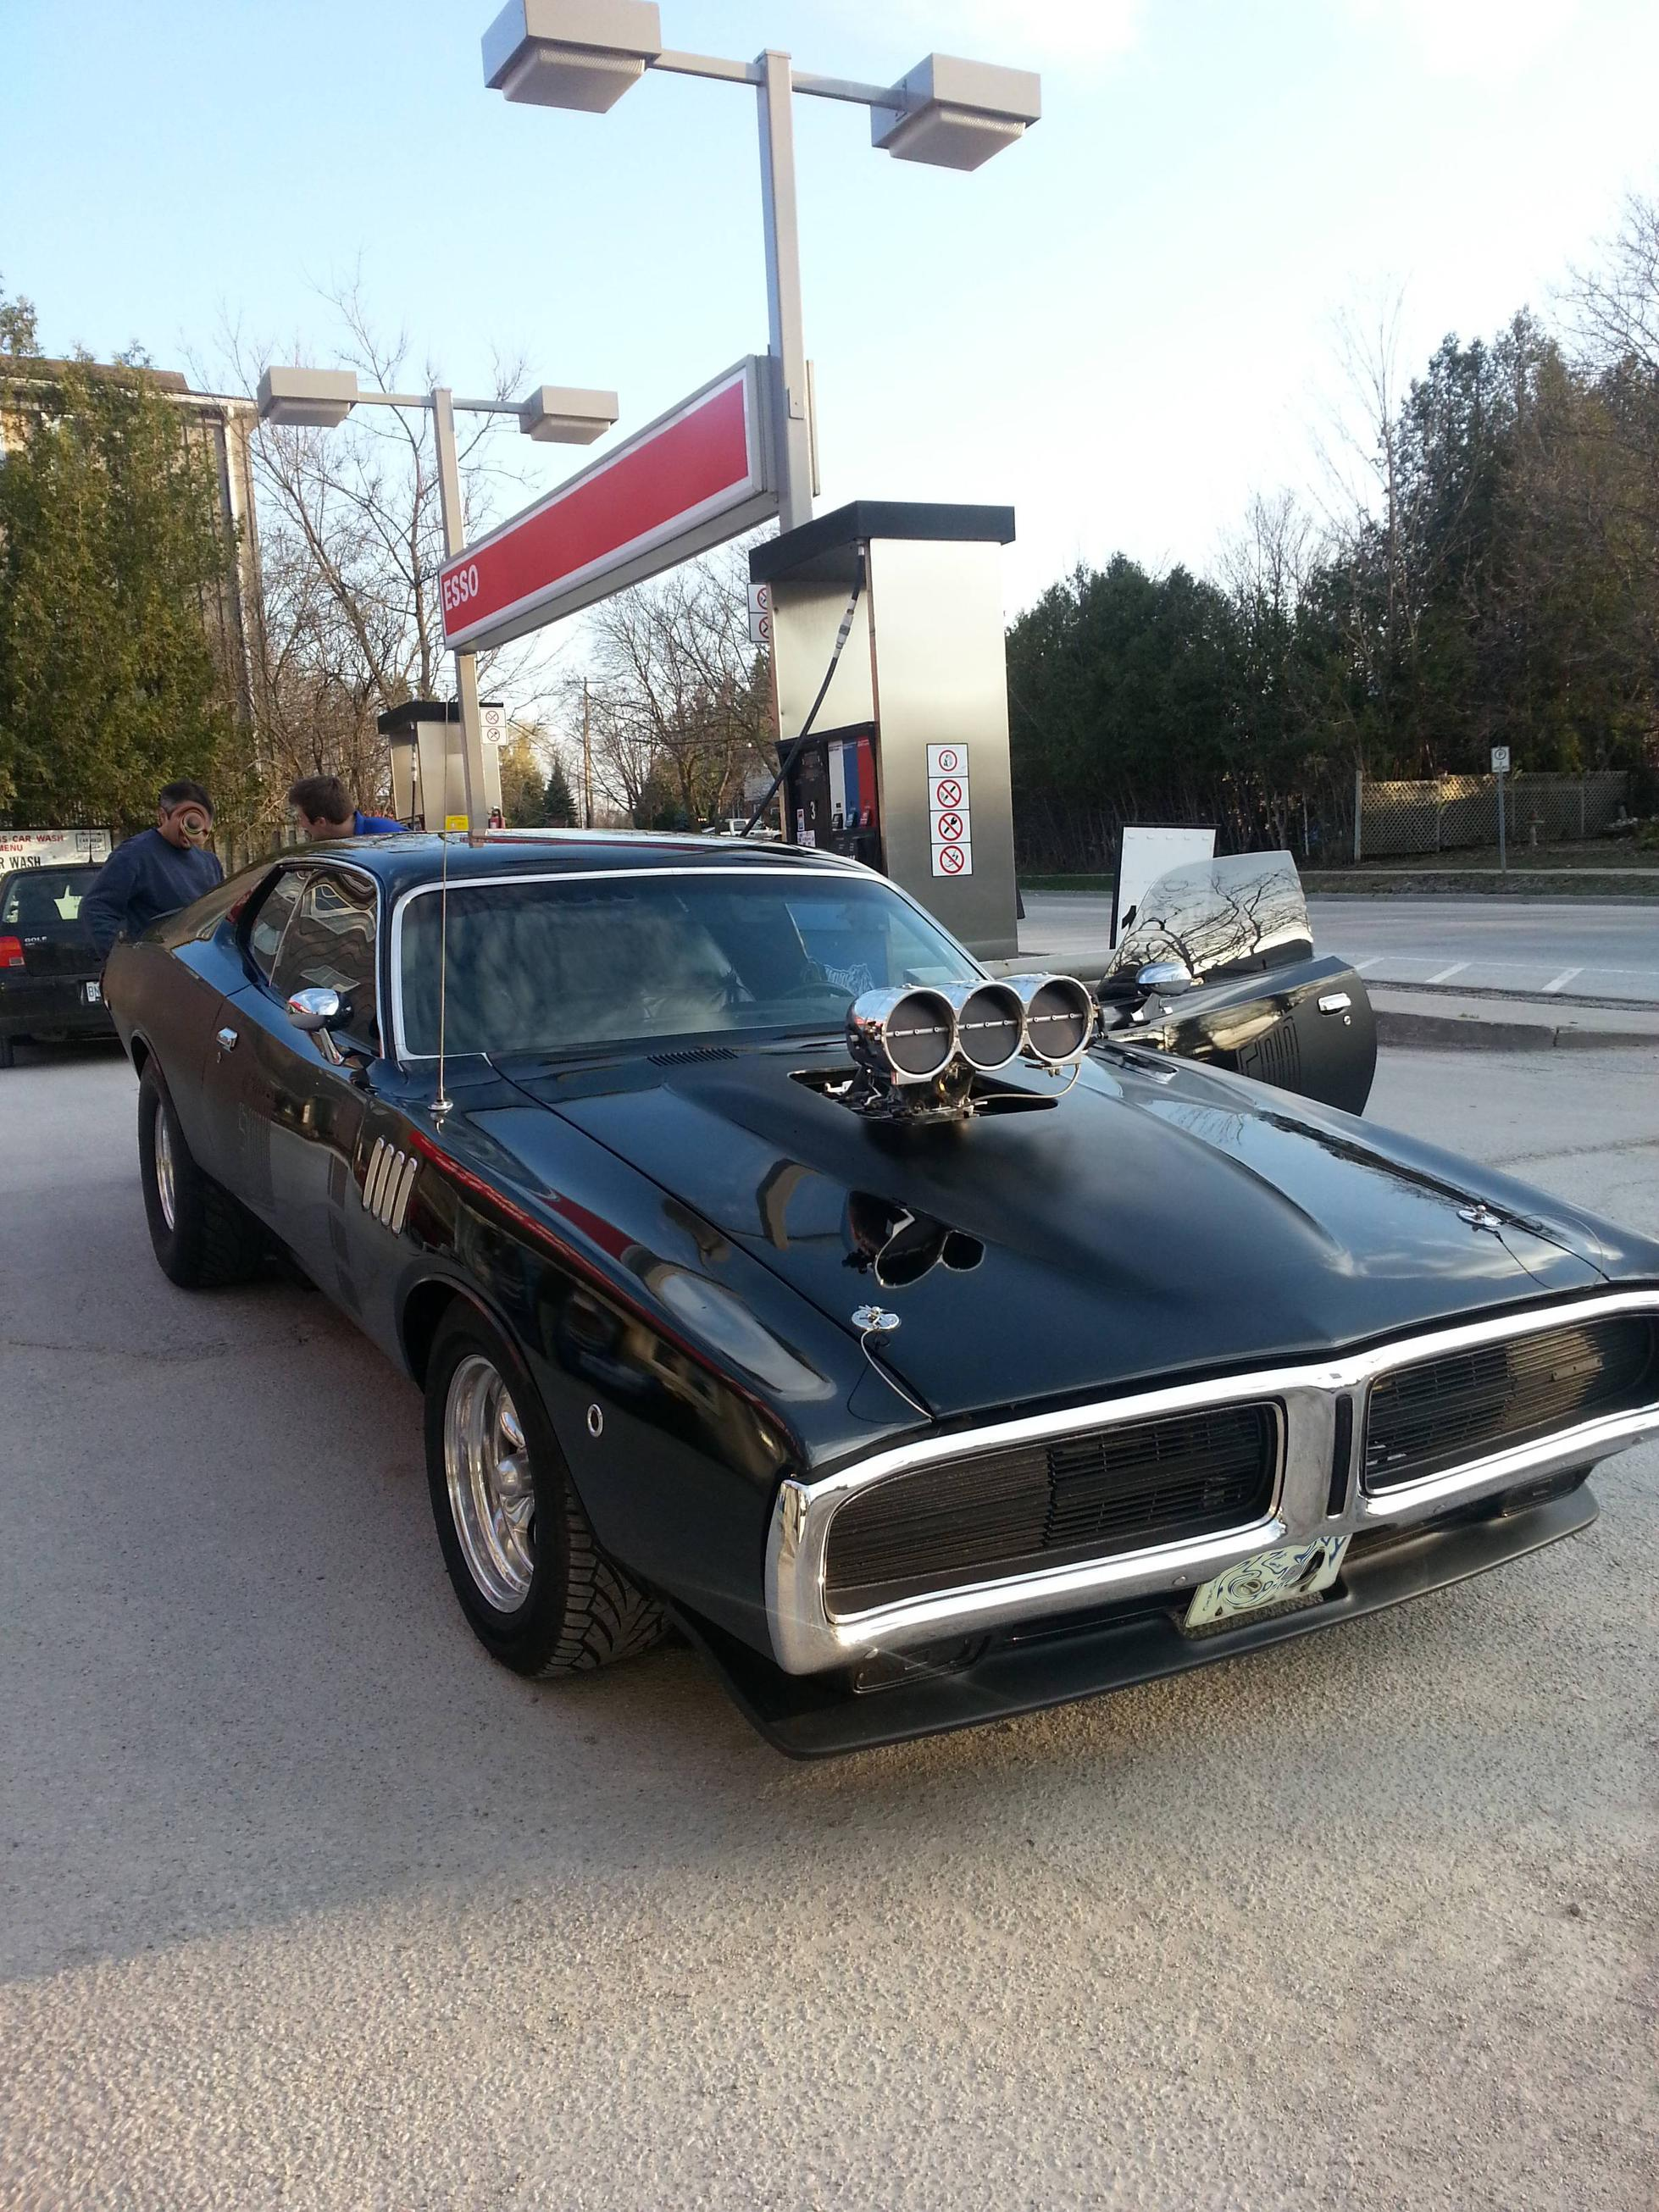 Cool or Corny? | Mopar Blog